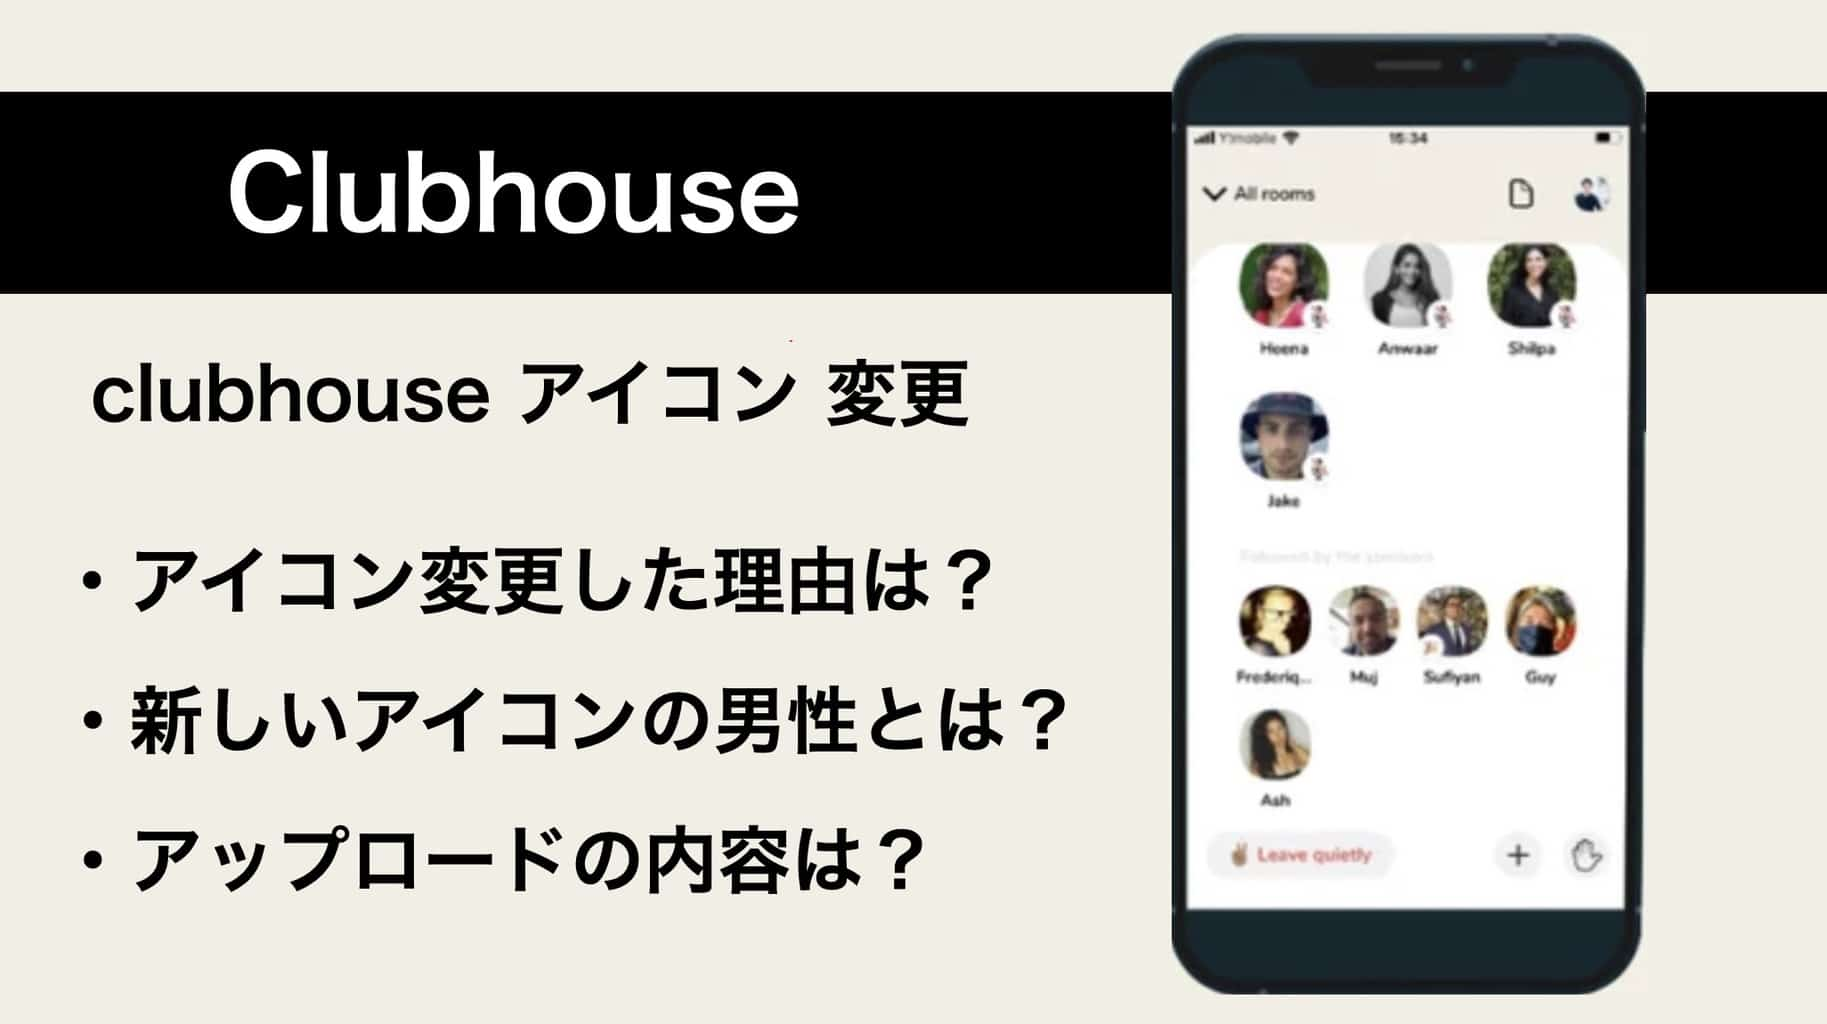 clubhouse アイコン 変更